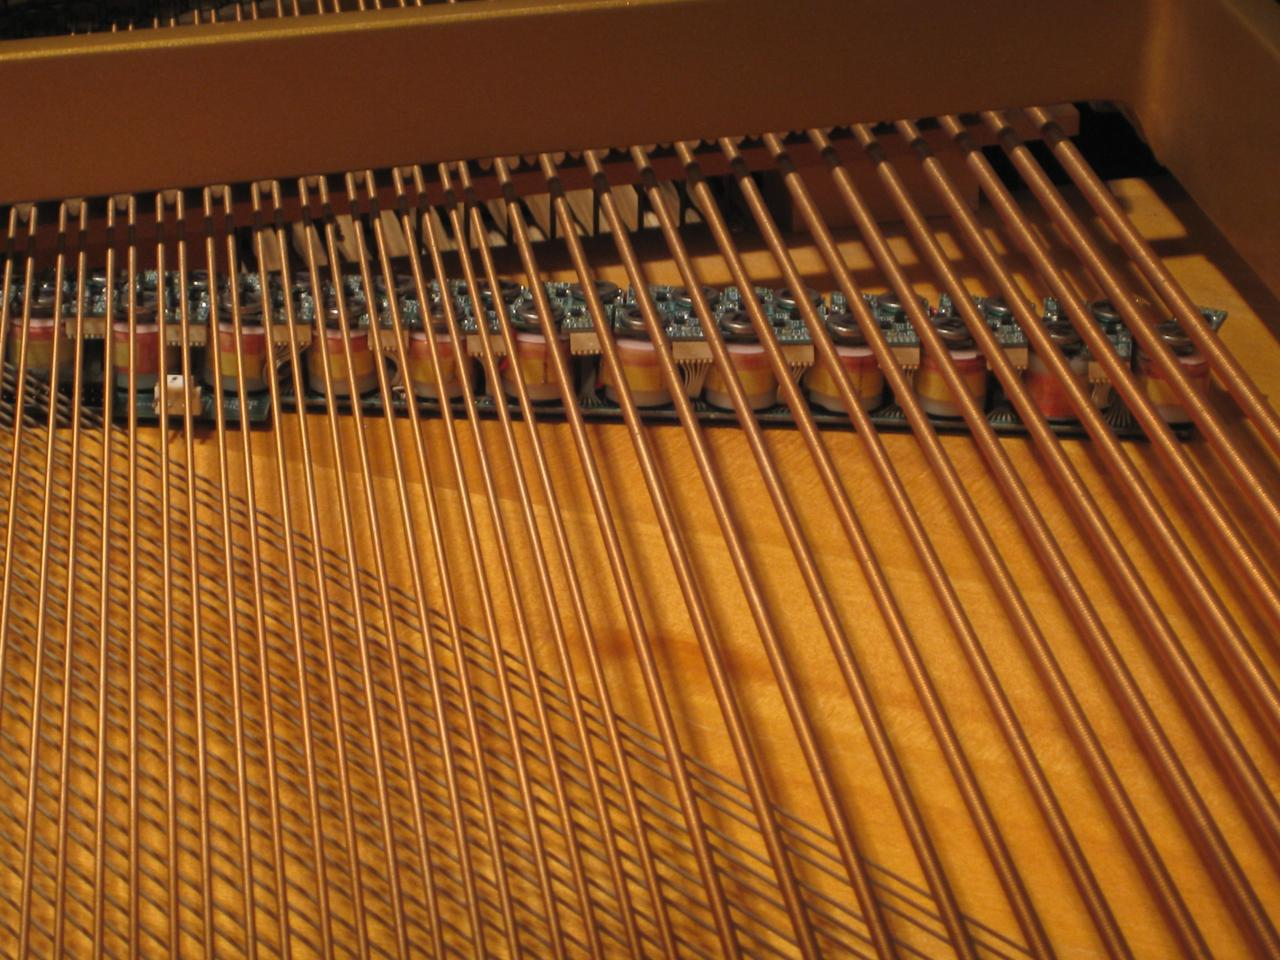 Each string of the piano has its own sustainer module